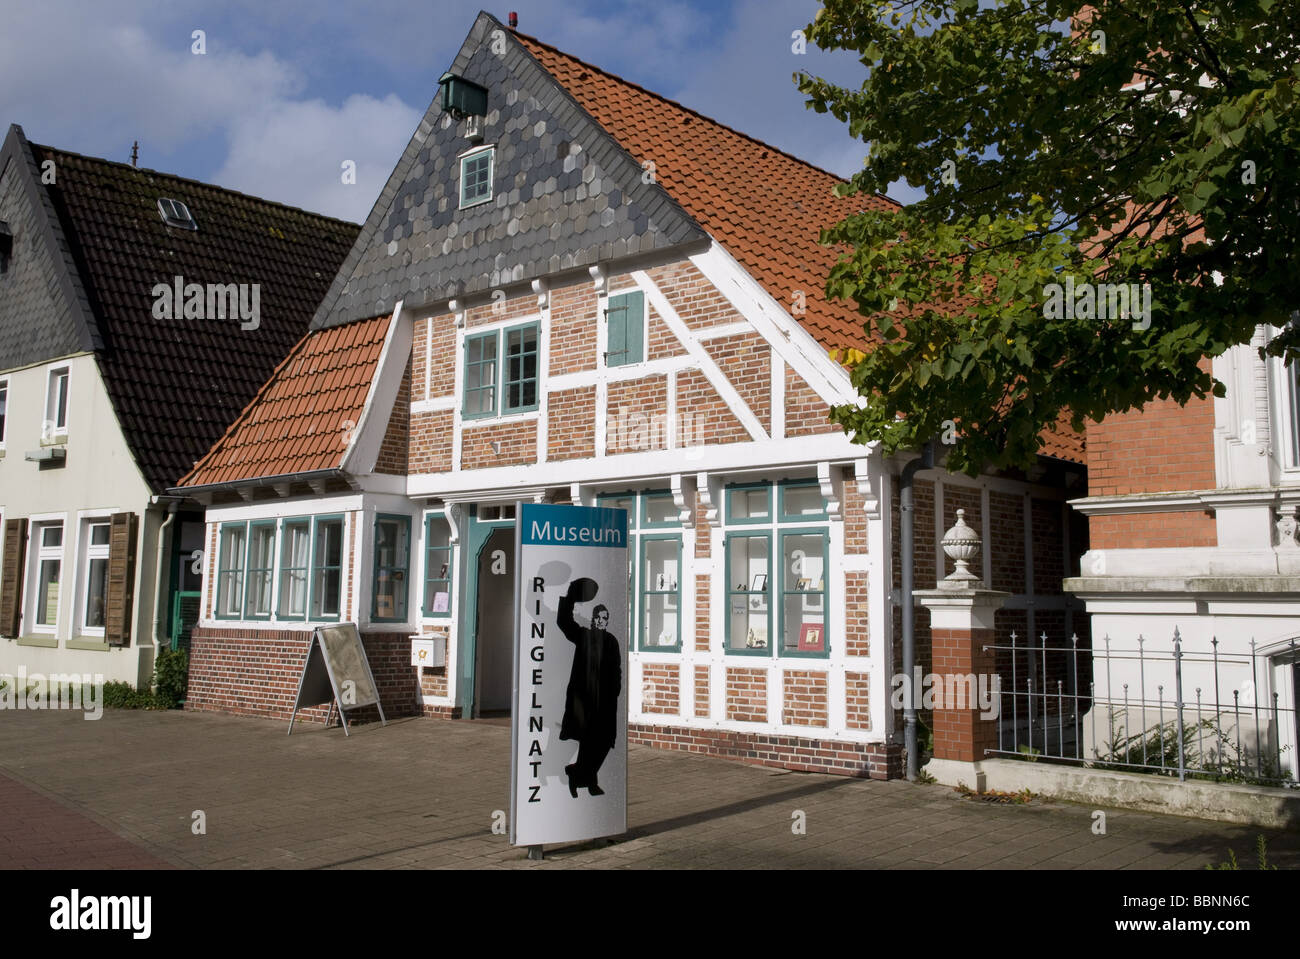 geography / travel, Germany, Lower Saxony, Cuxhaven, Ringelnatz Museum, exterior view, Additional-Rights-Clearance - Stock Image